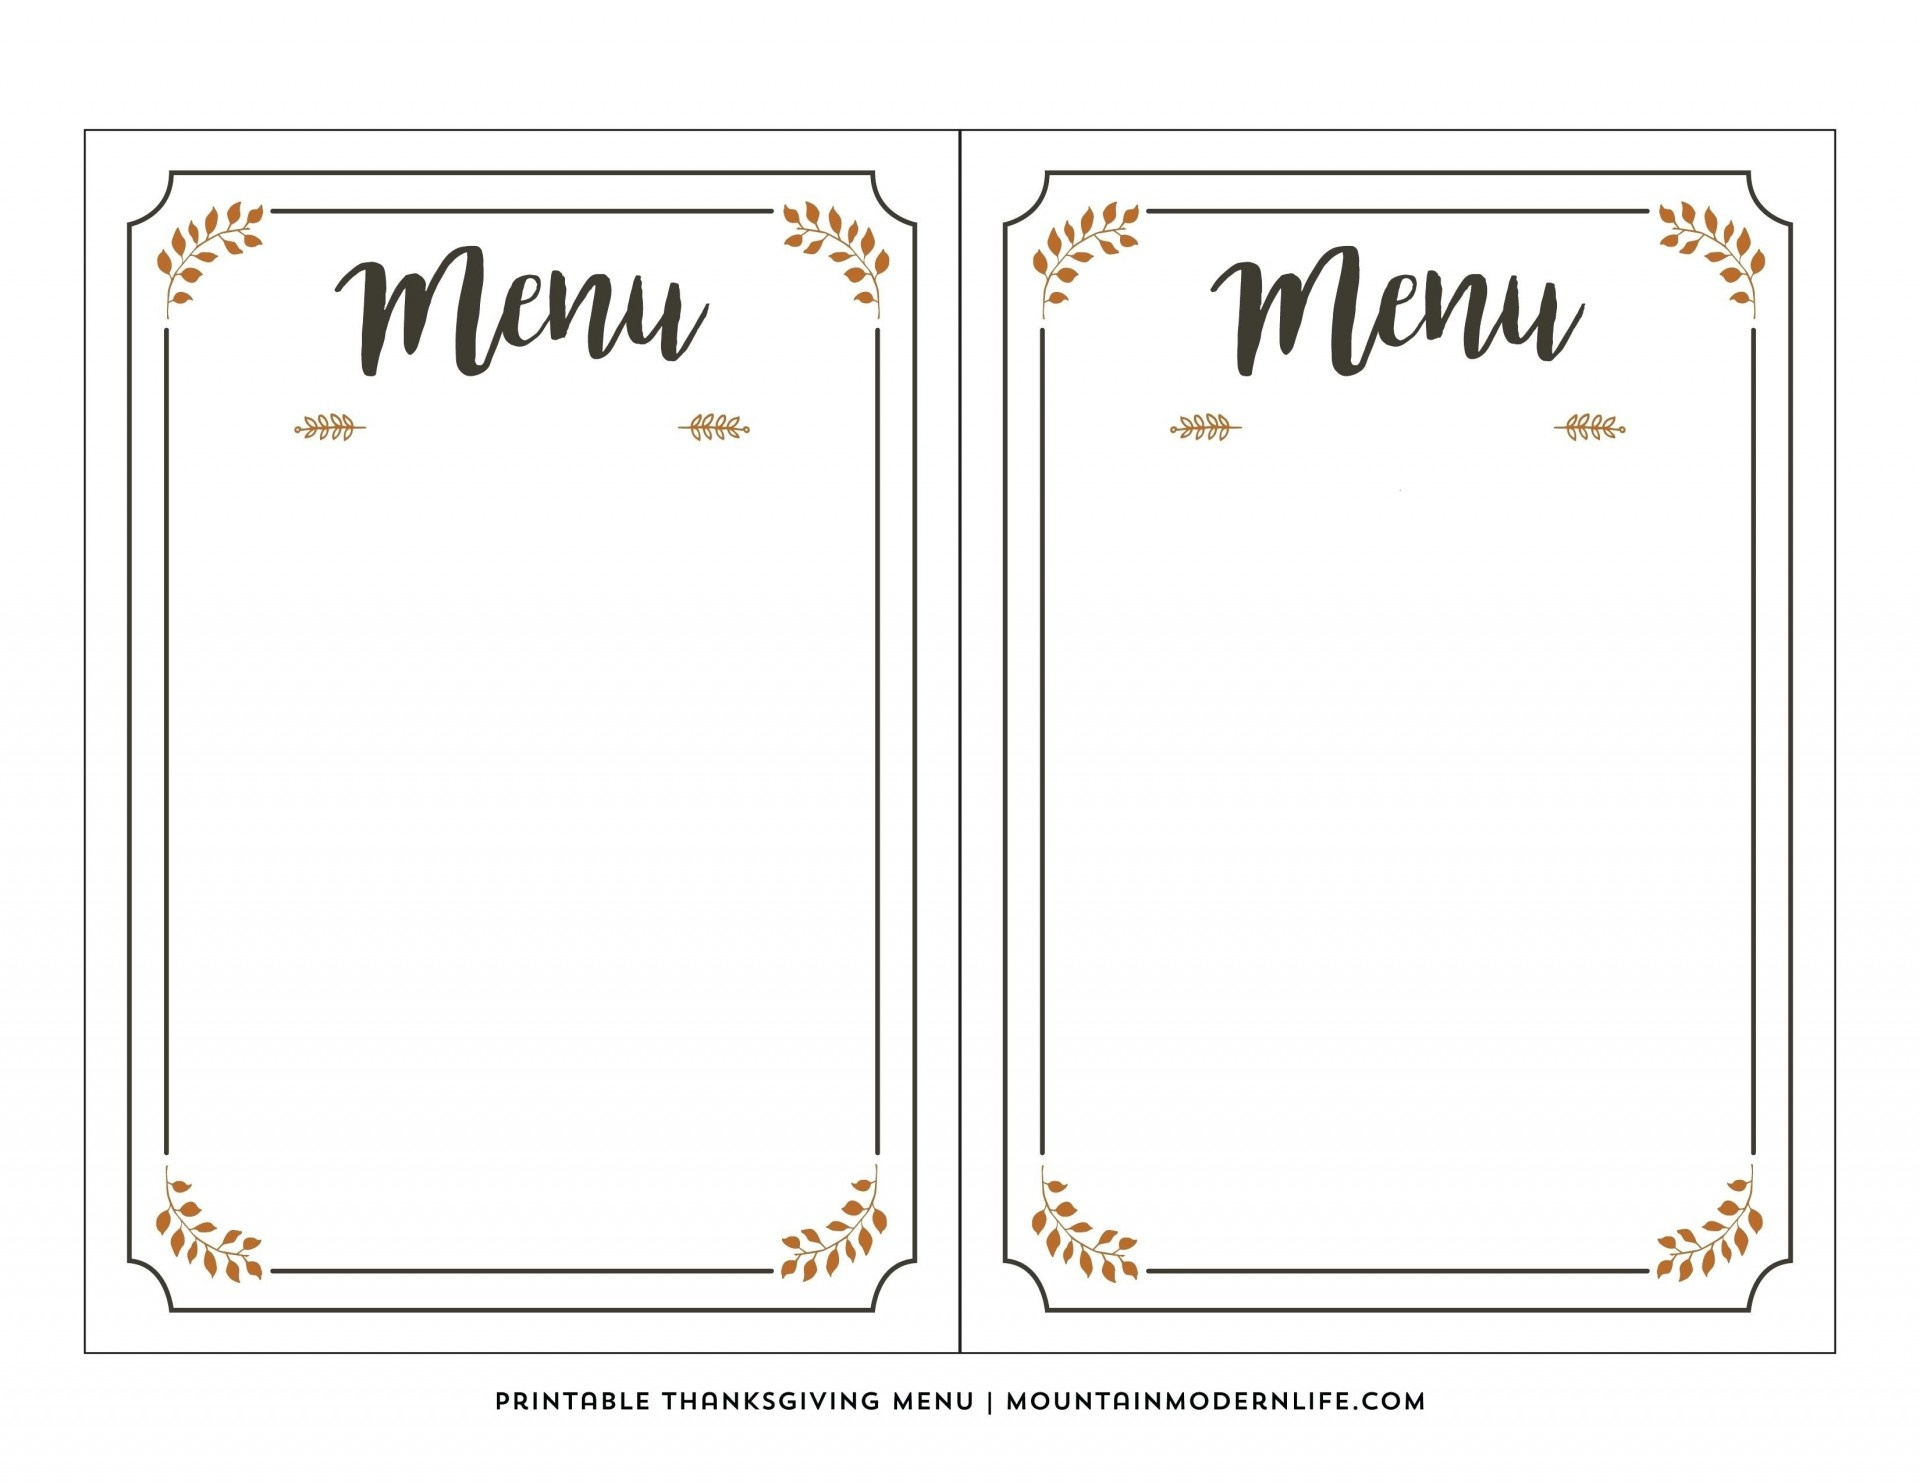 003 Free Printable Menu Template Templates For Kids New Awesome - Free Printable Menu Templates